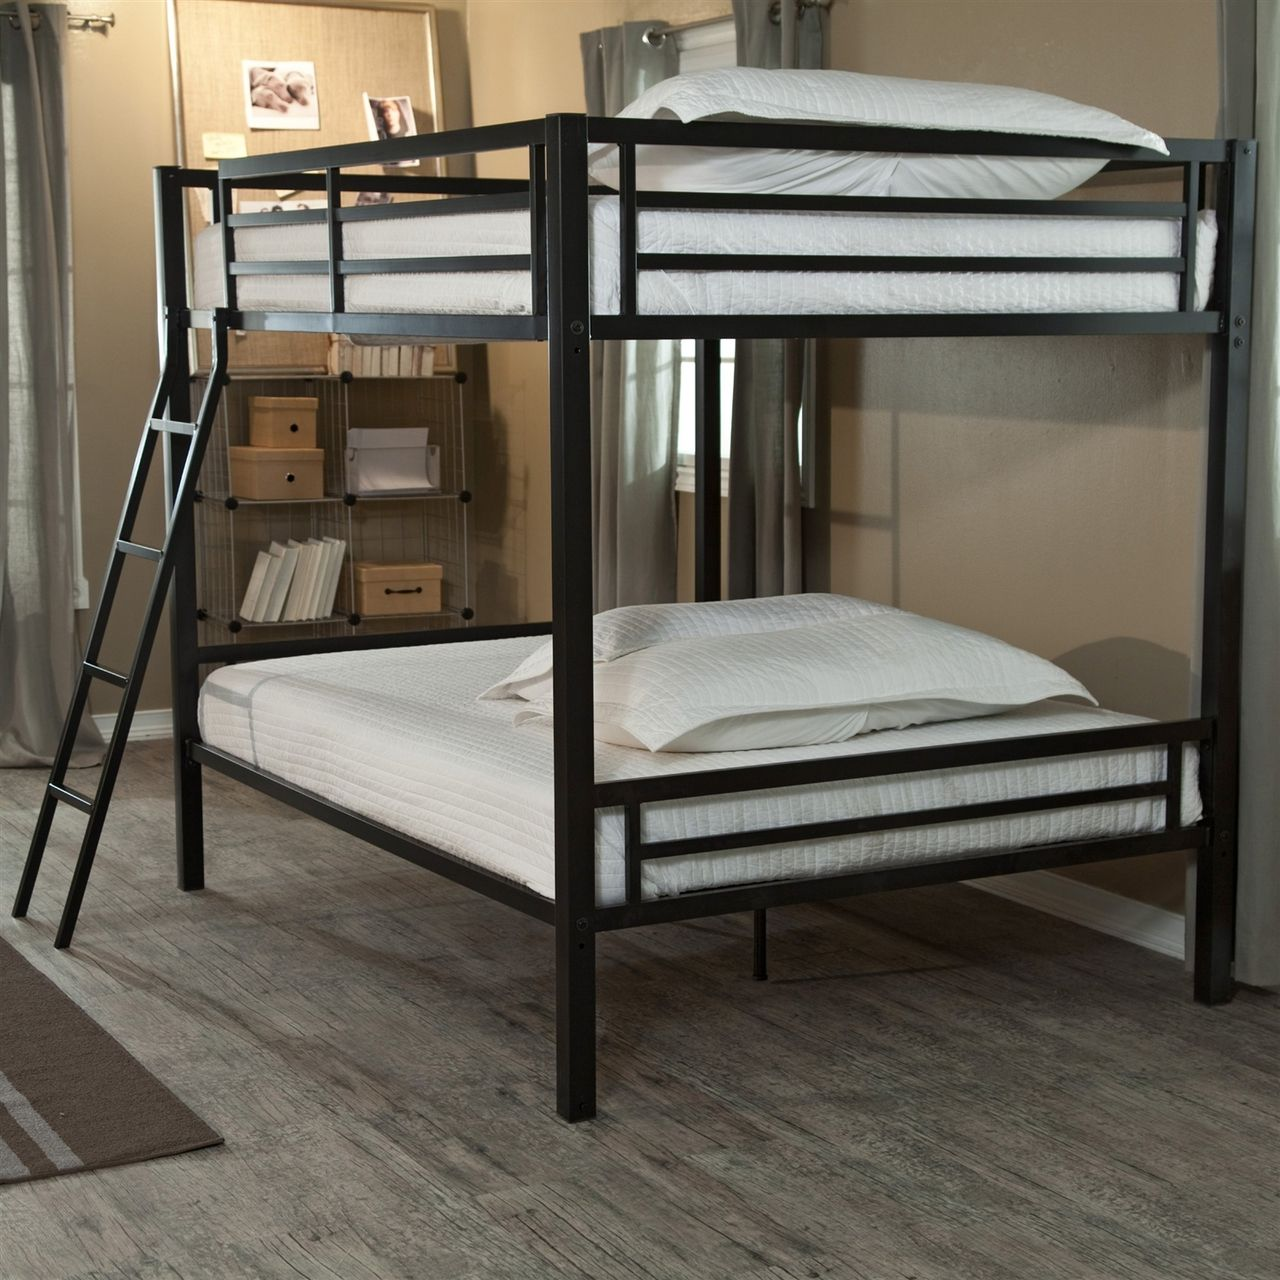 Full over Full Bunk Bed, Ladder, Safety Rails, Black Metal